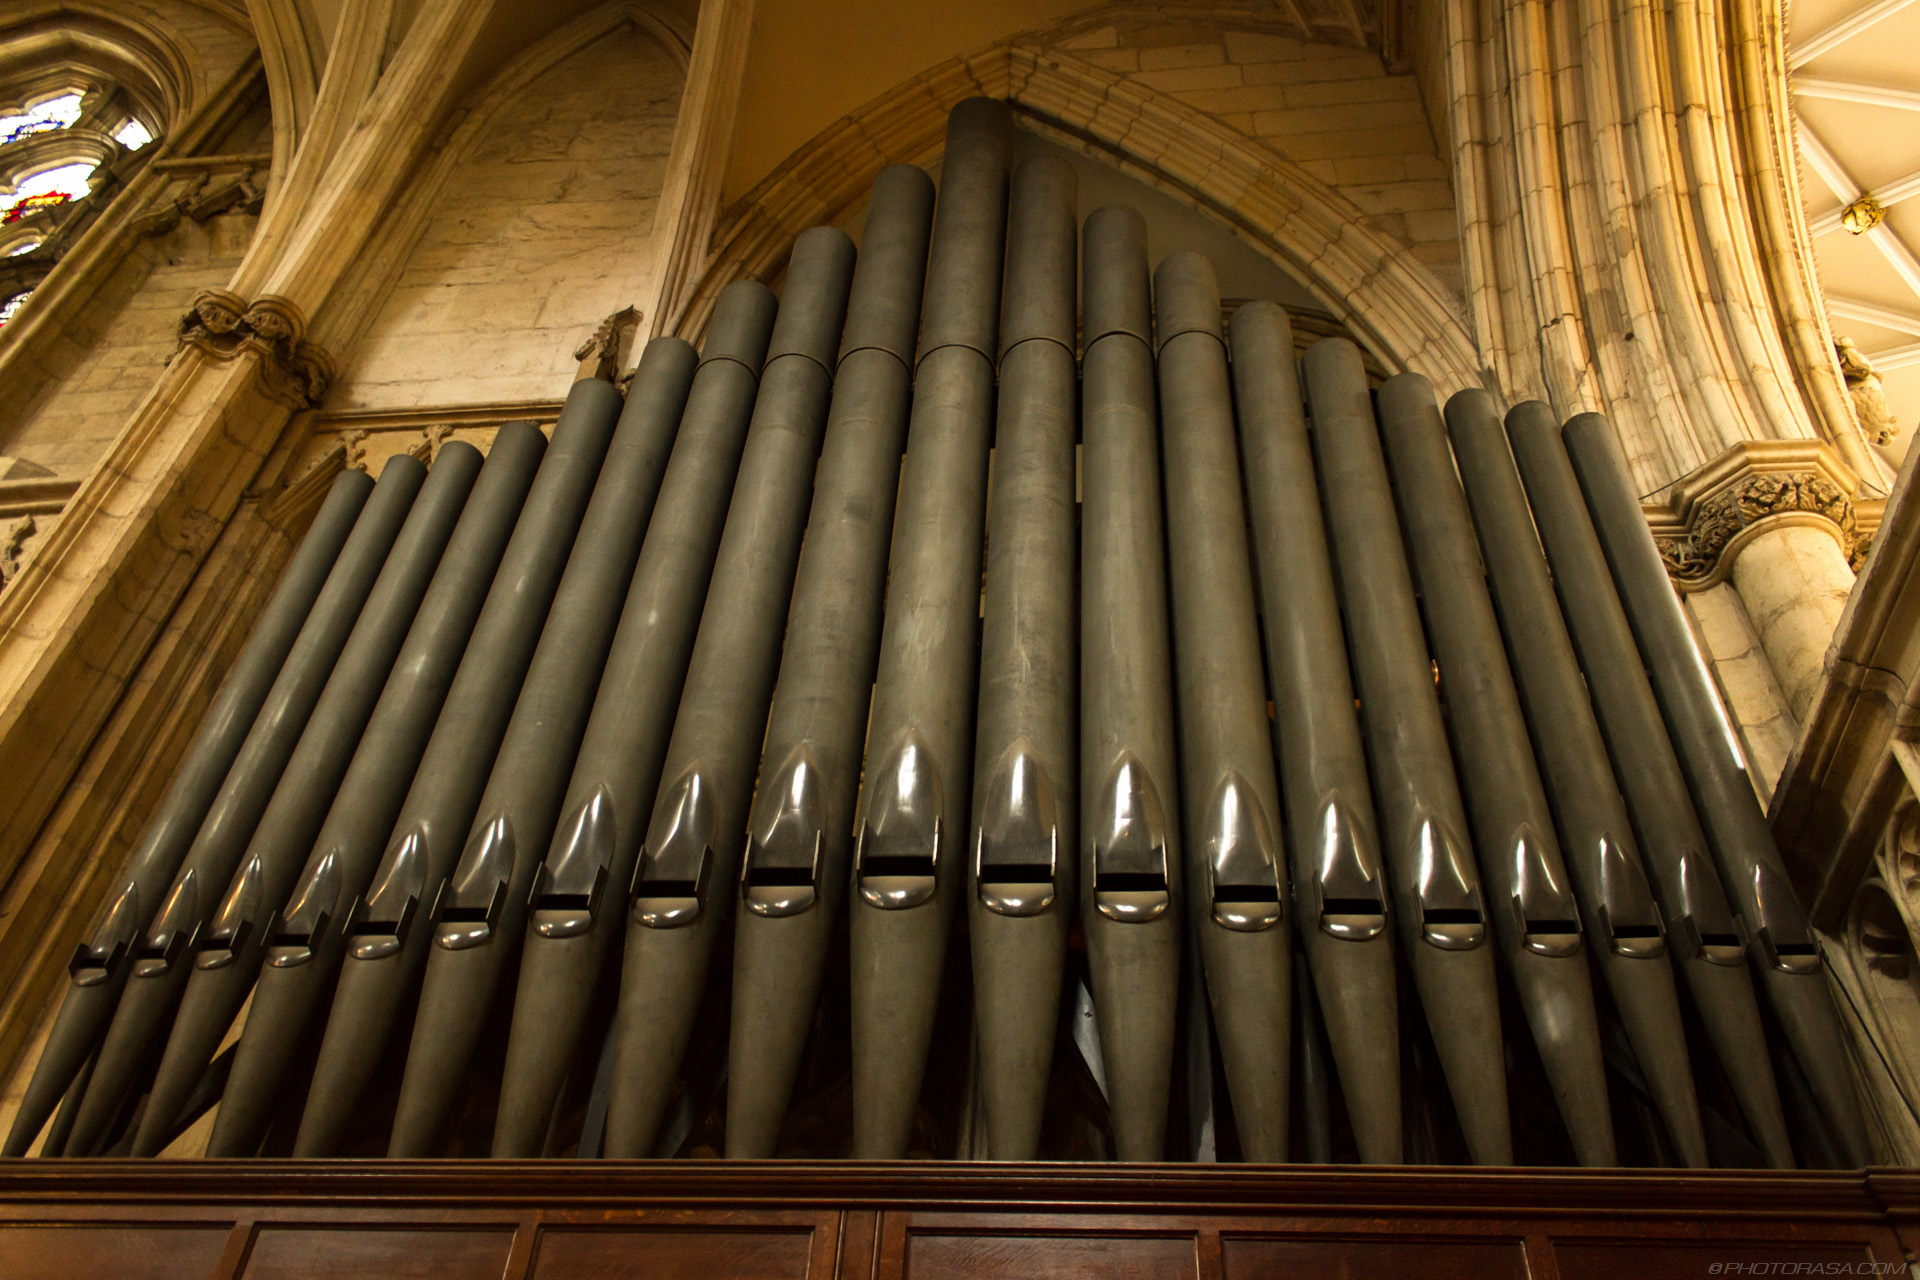 http://photorasa.com/yorkminster-cathedral/grey-pipes-from-the-old-organ/